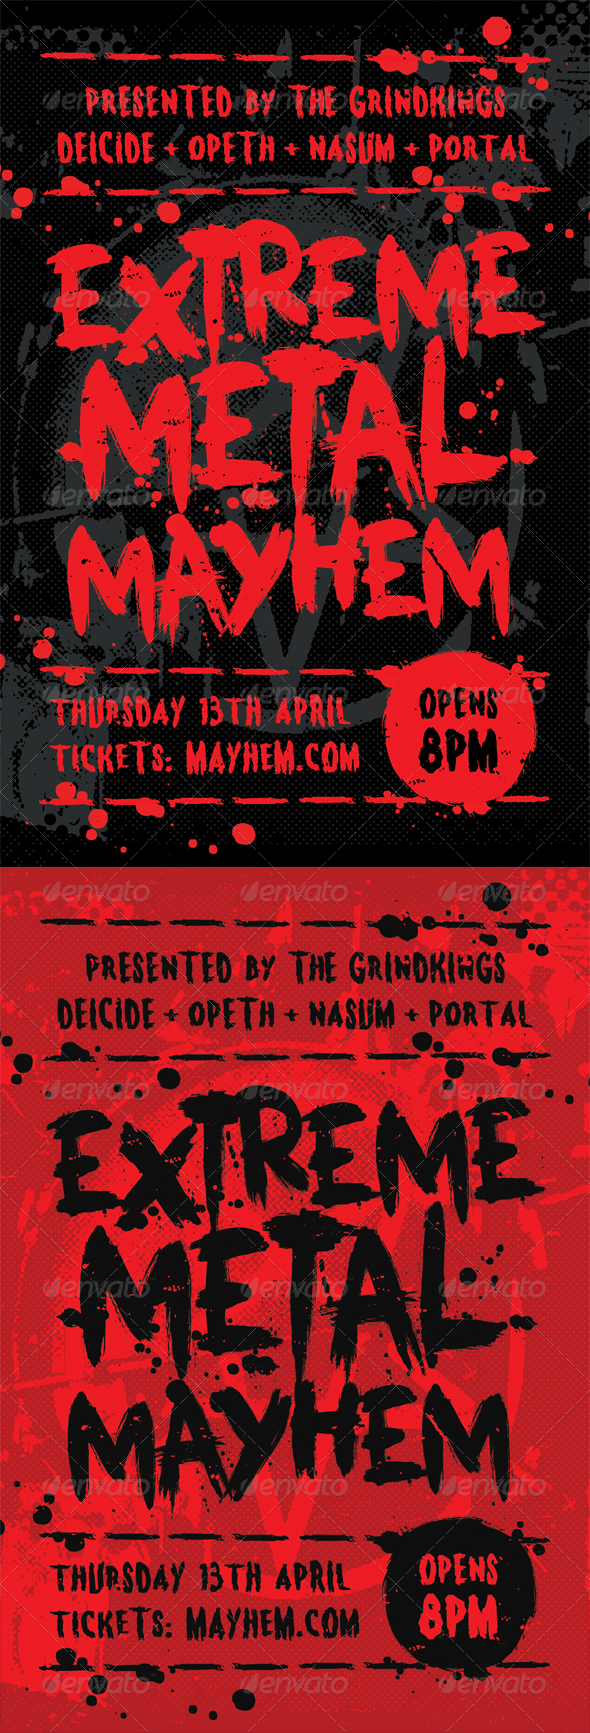 Mayhem   Heavy Metal Flyer Template   Concerts Events